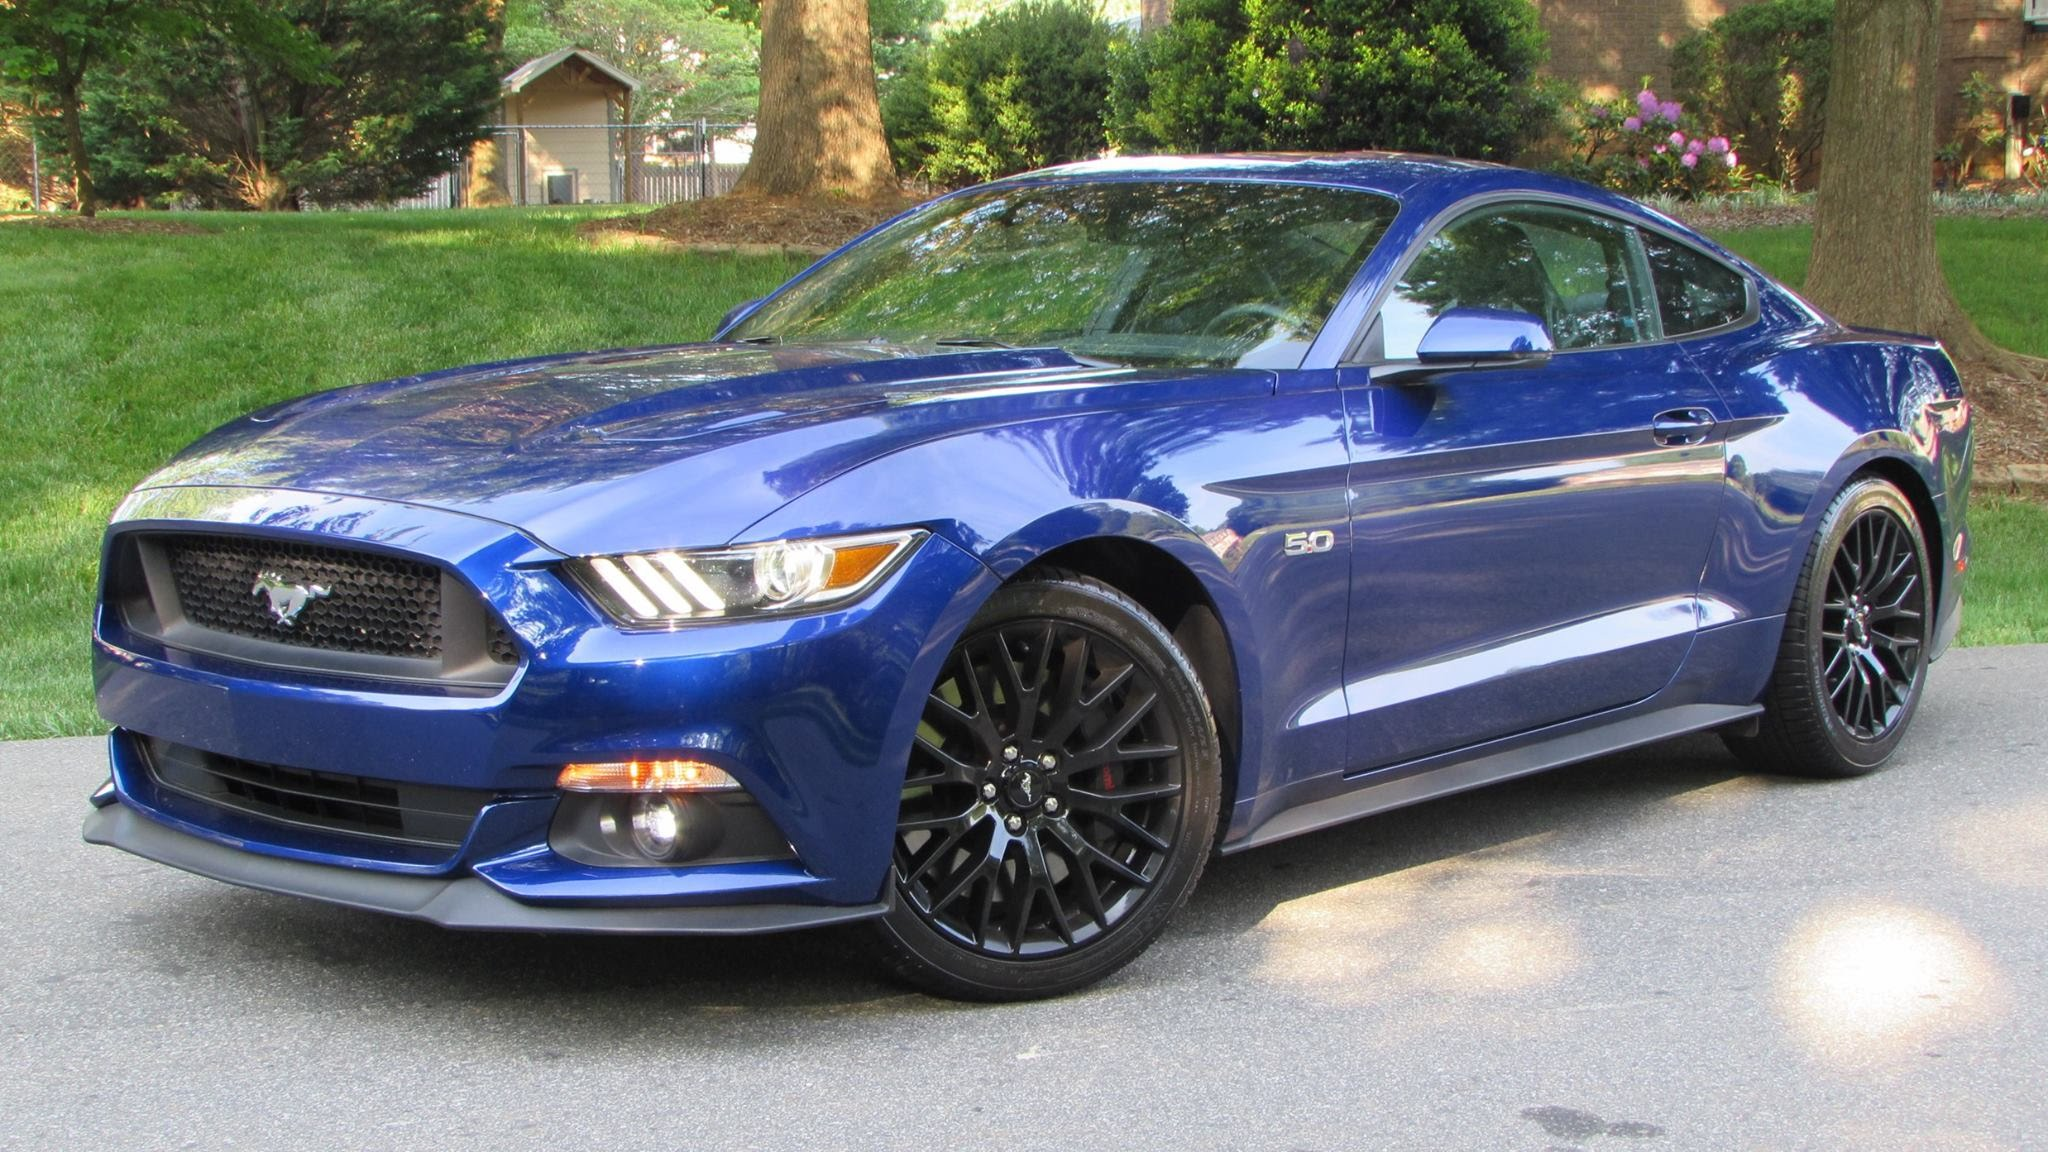 Ford Mustang 6 Widescreen for desktop